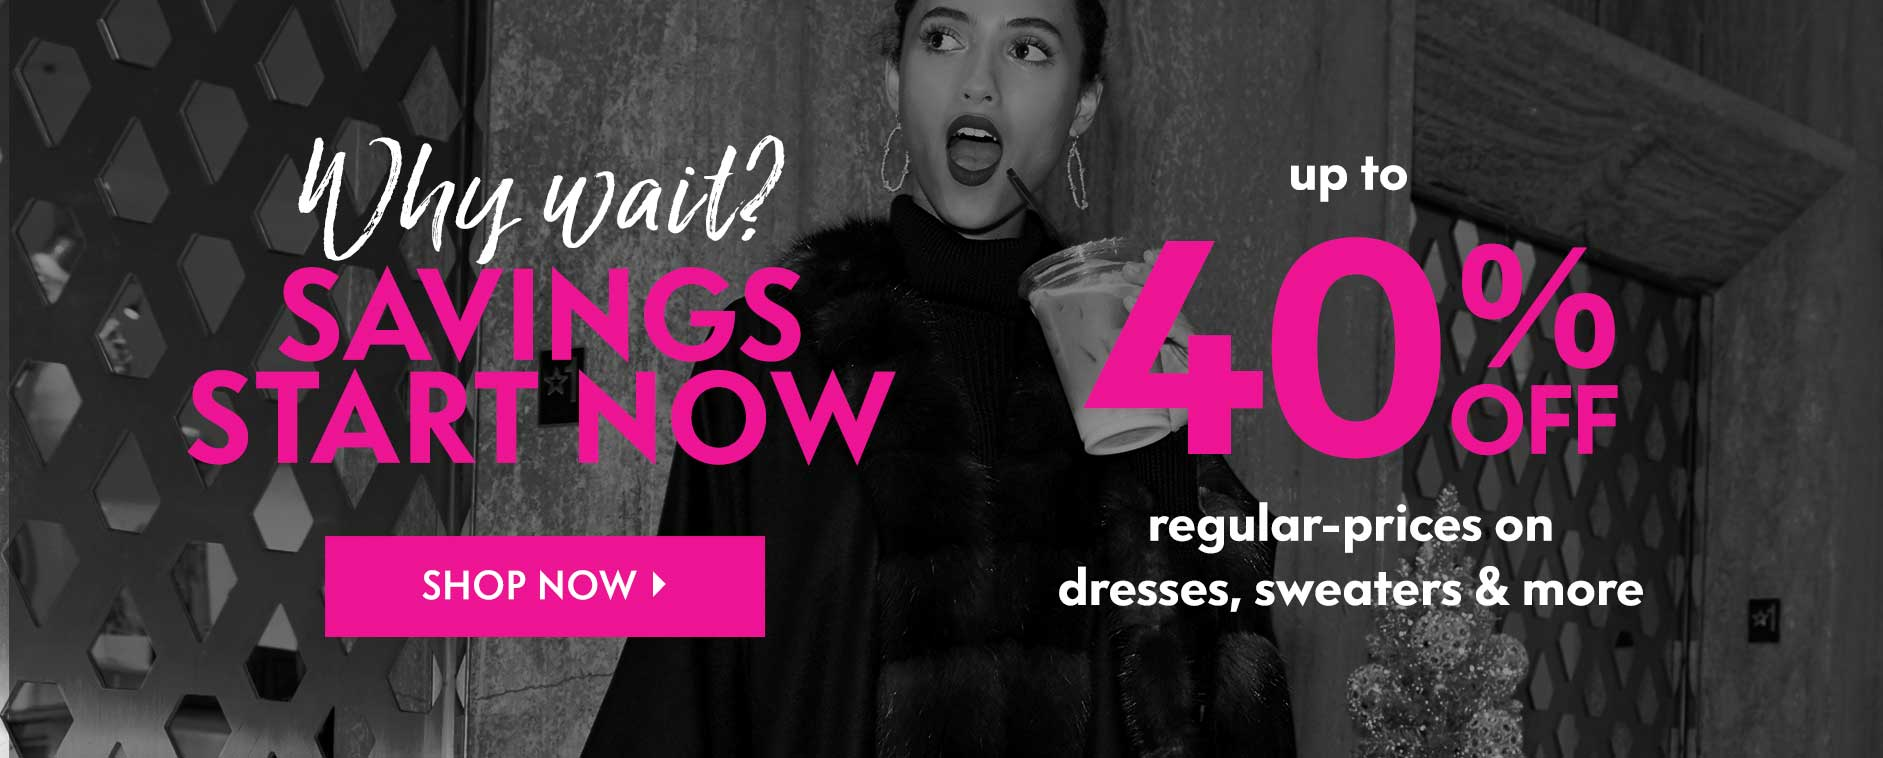 Why wait? Savings start now! Up to 40% off regular-prices on dresses, sweaters & more